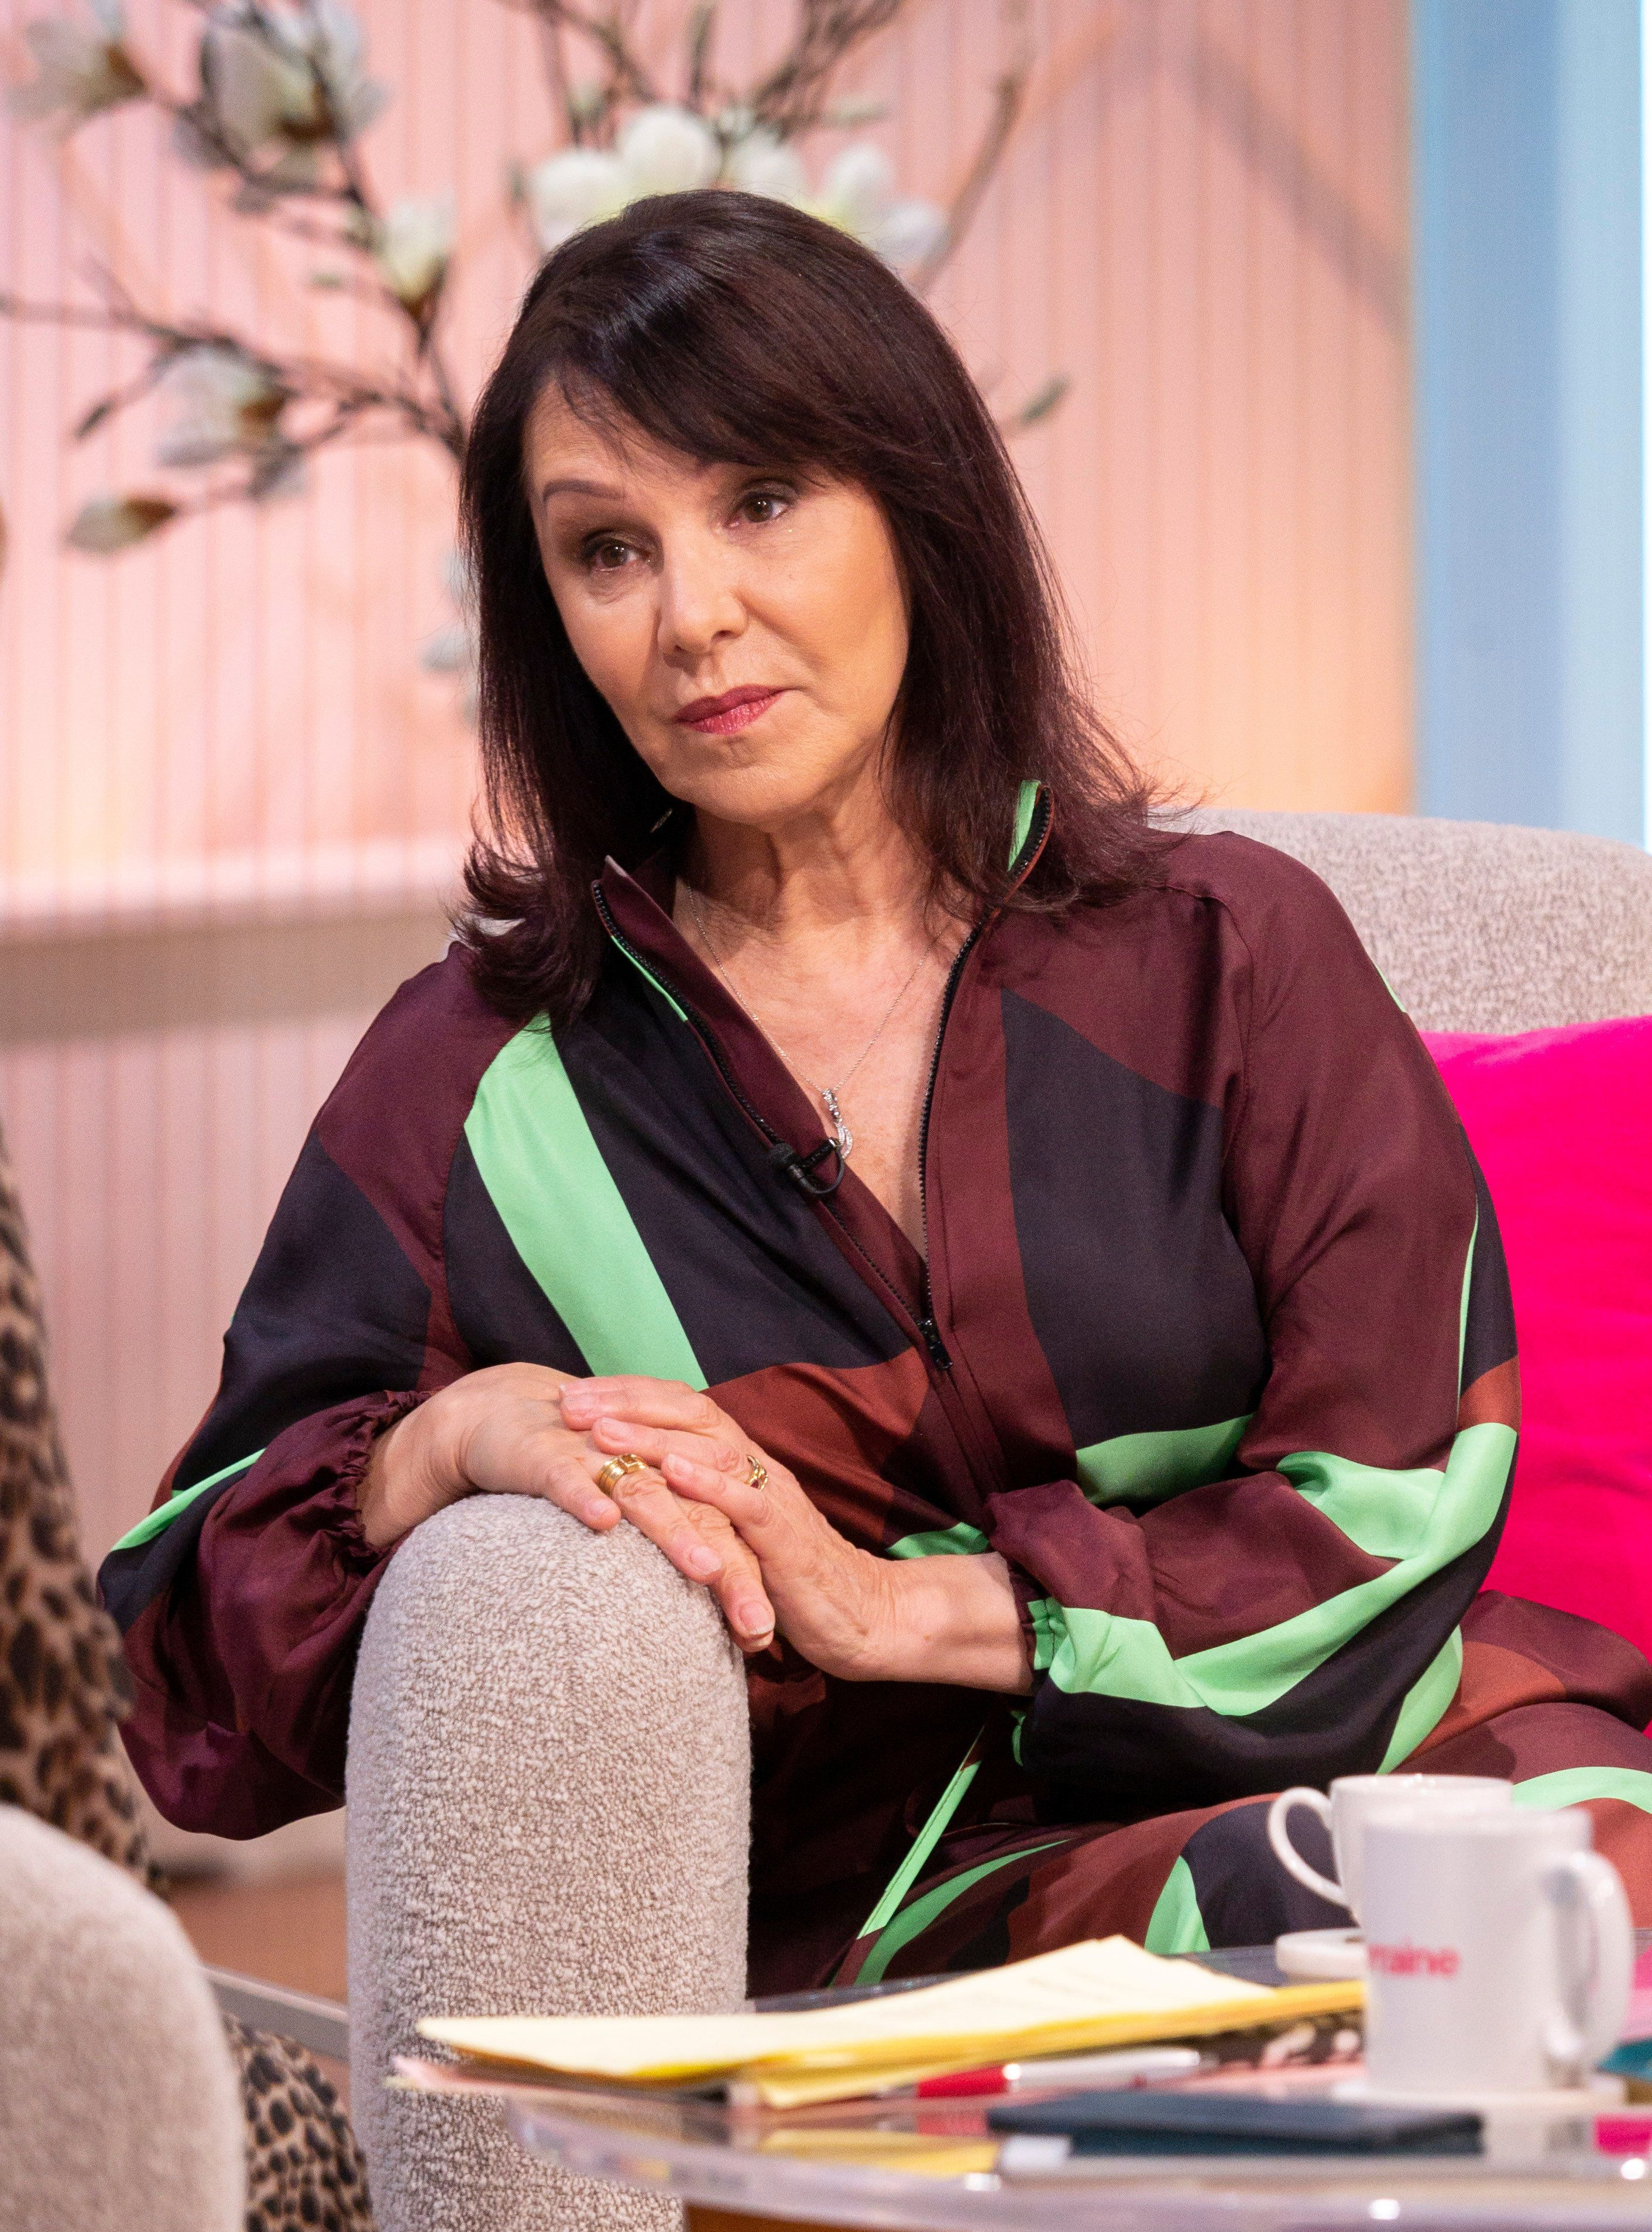 Former 'Strictly' Judge Arlene Phillips Insists Seann Walsh And Katya Jones Should Stay On The Show - And Be Judged